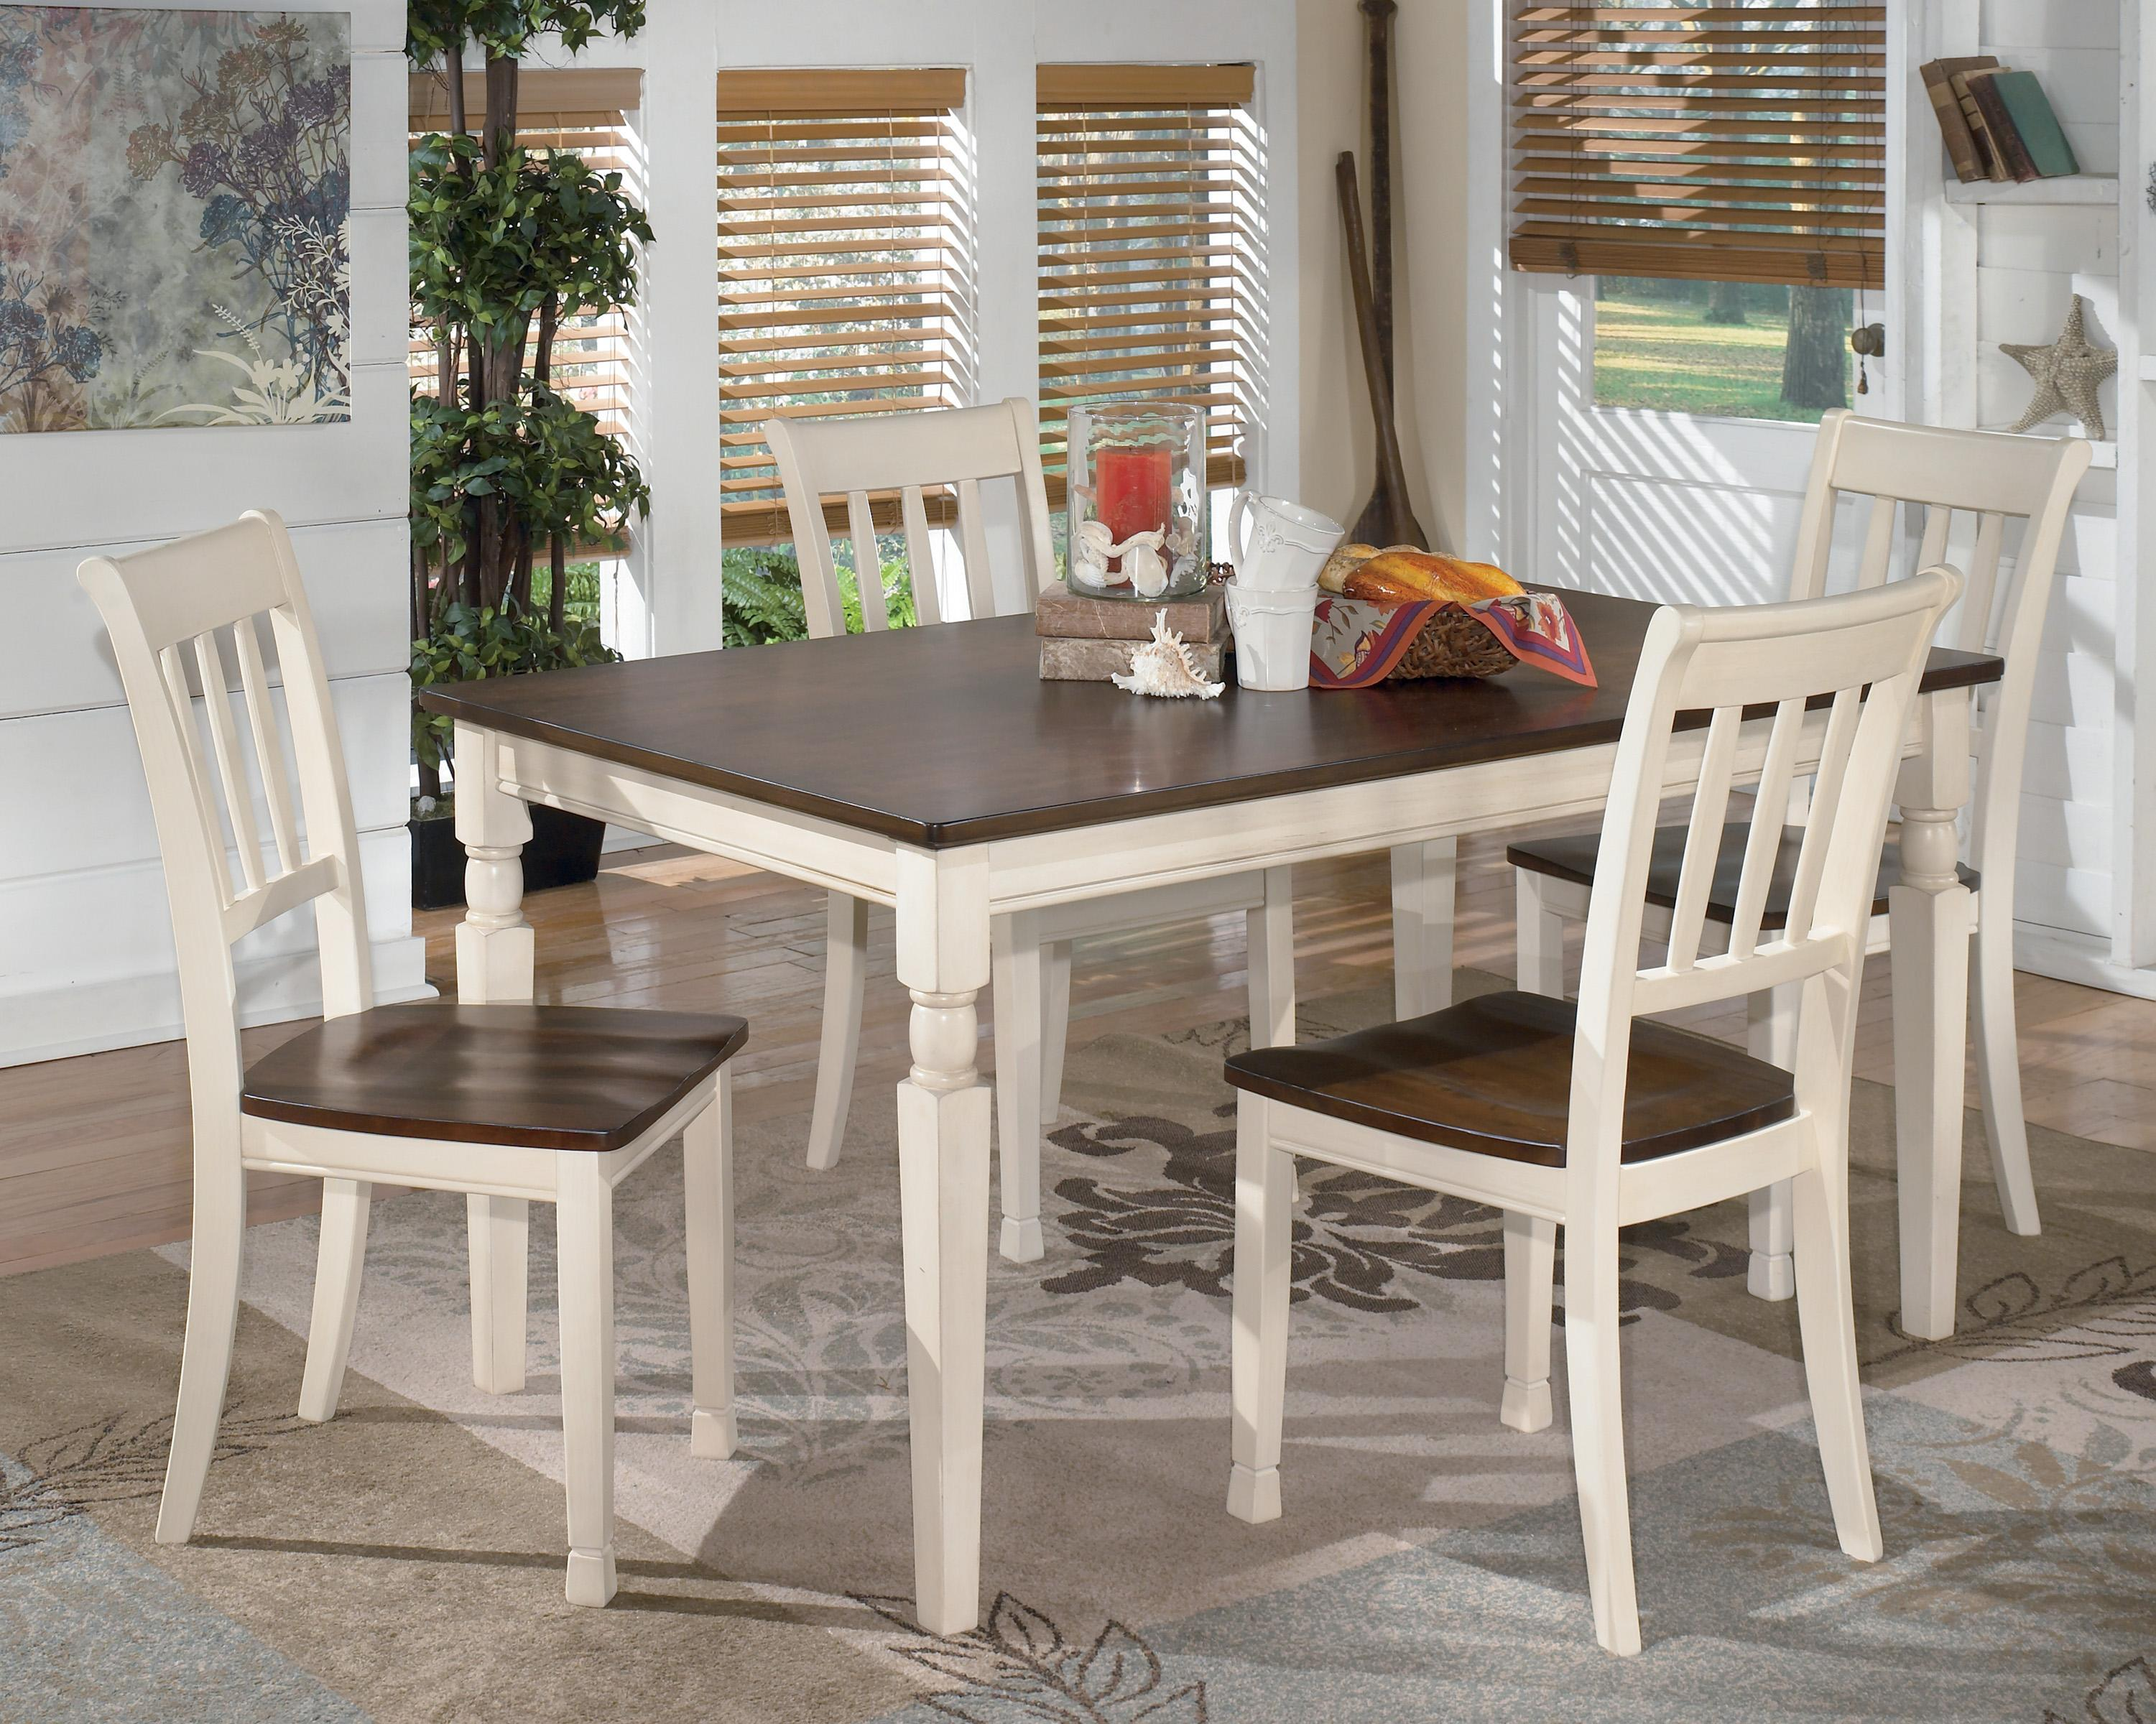 Design By Ashley Whitesburg 5 Piece Rectangular Dining Table Set